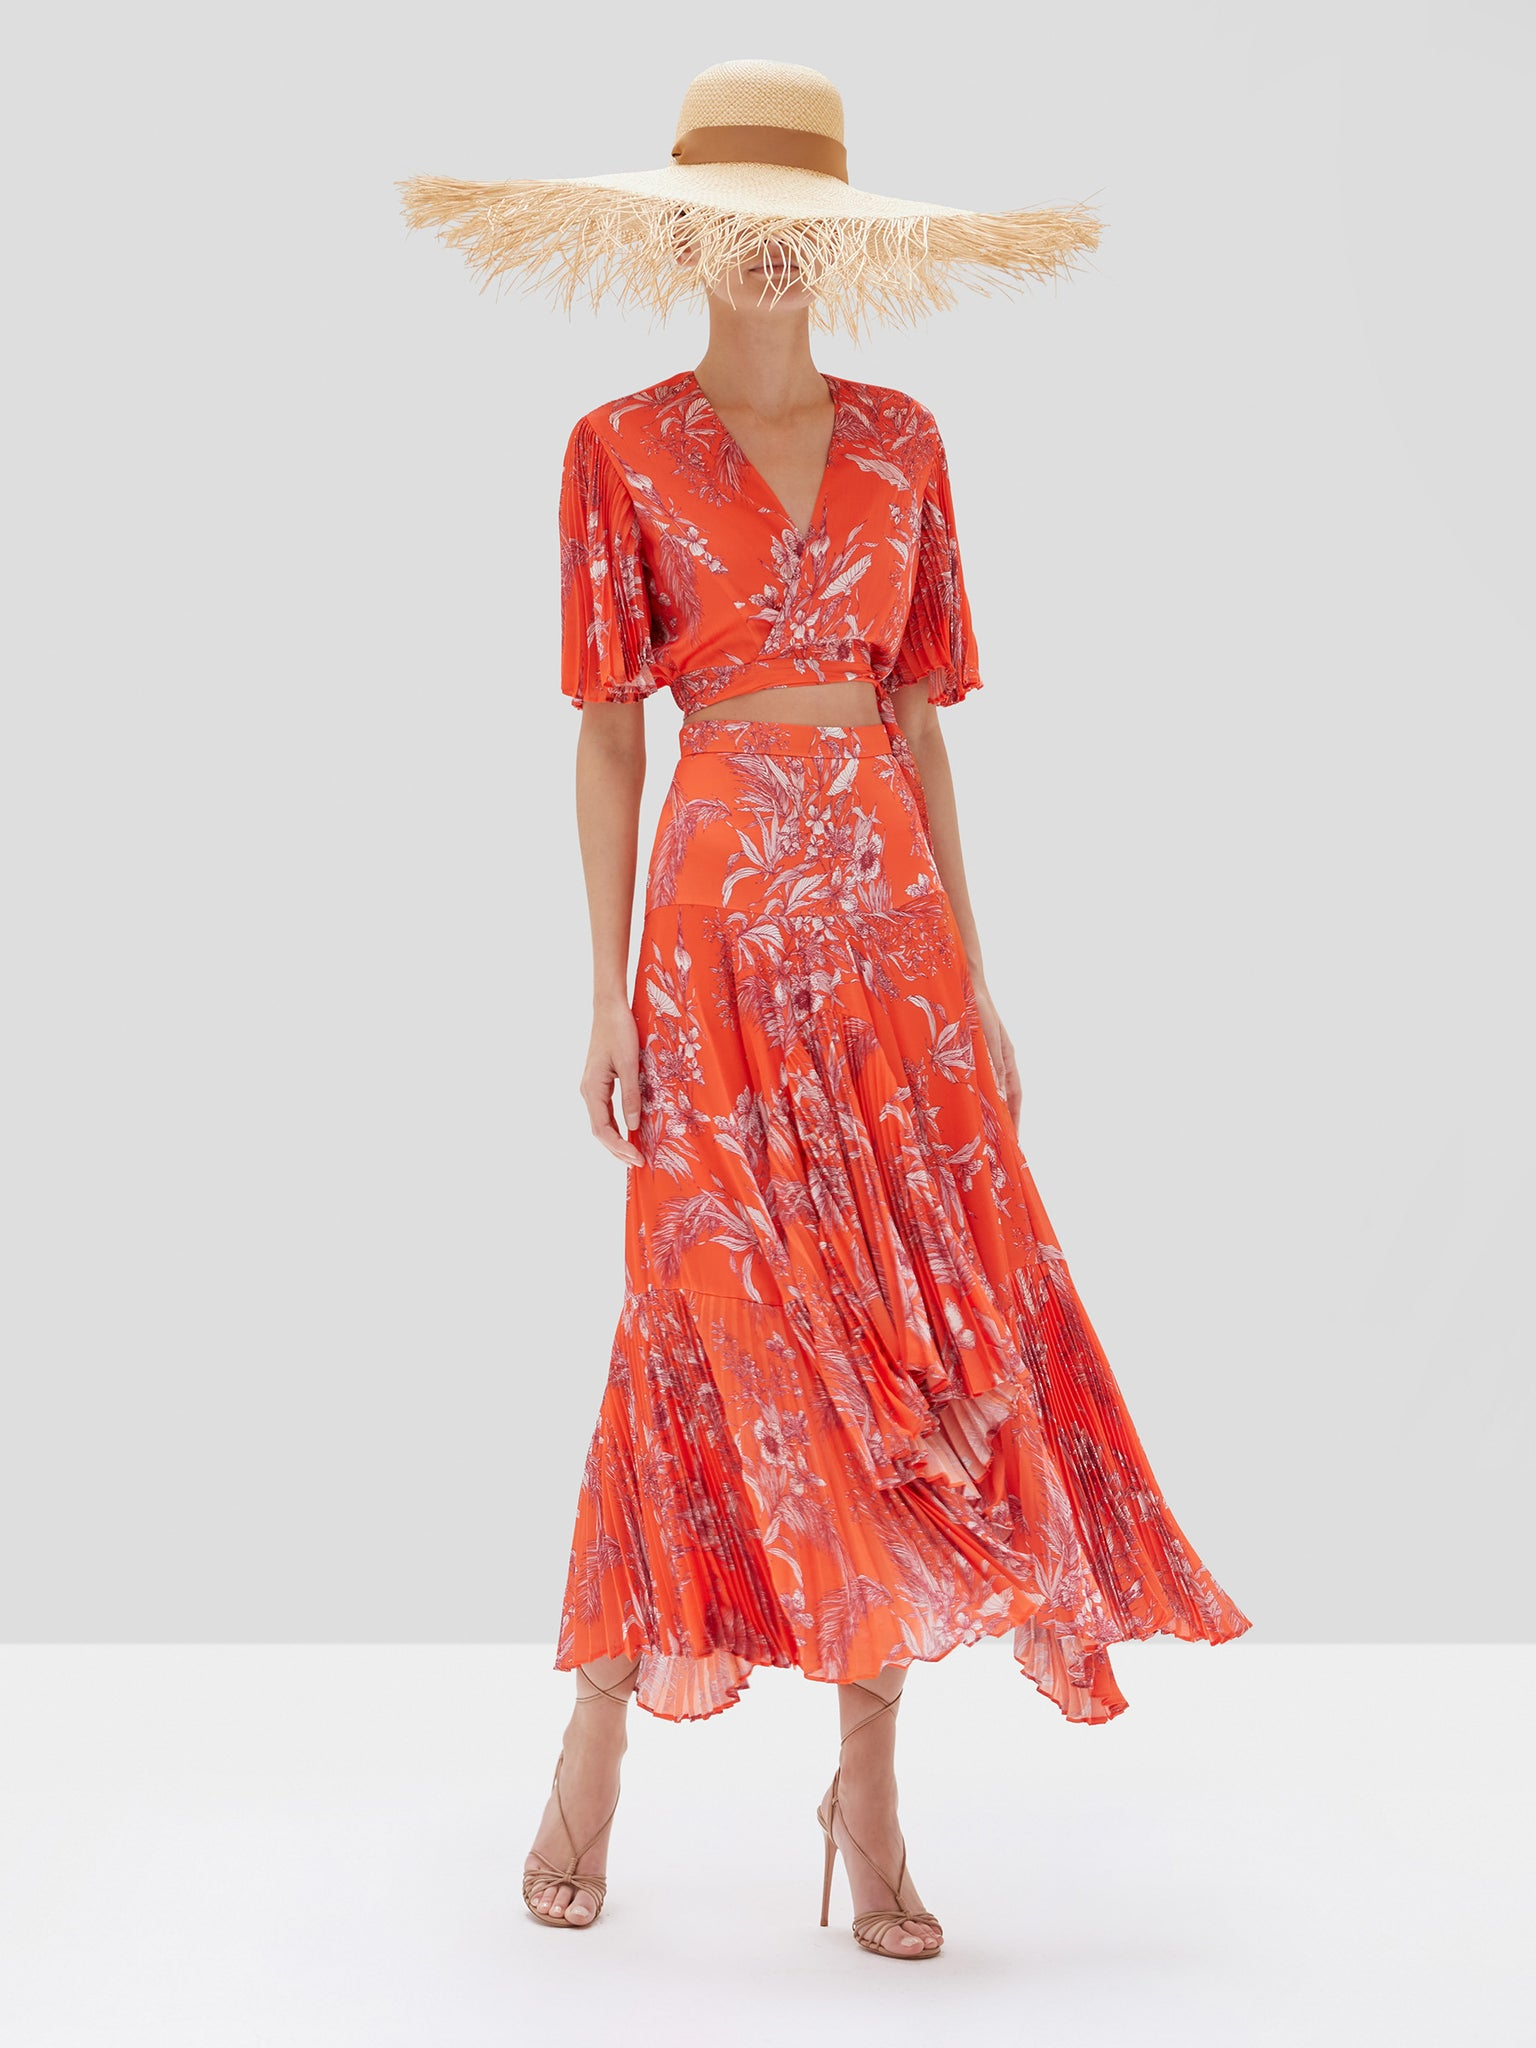 Alexis Rylie Top and Tarou Skirt in Mandarin Palm Spring Summer 2020 Collection